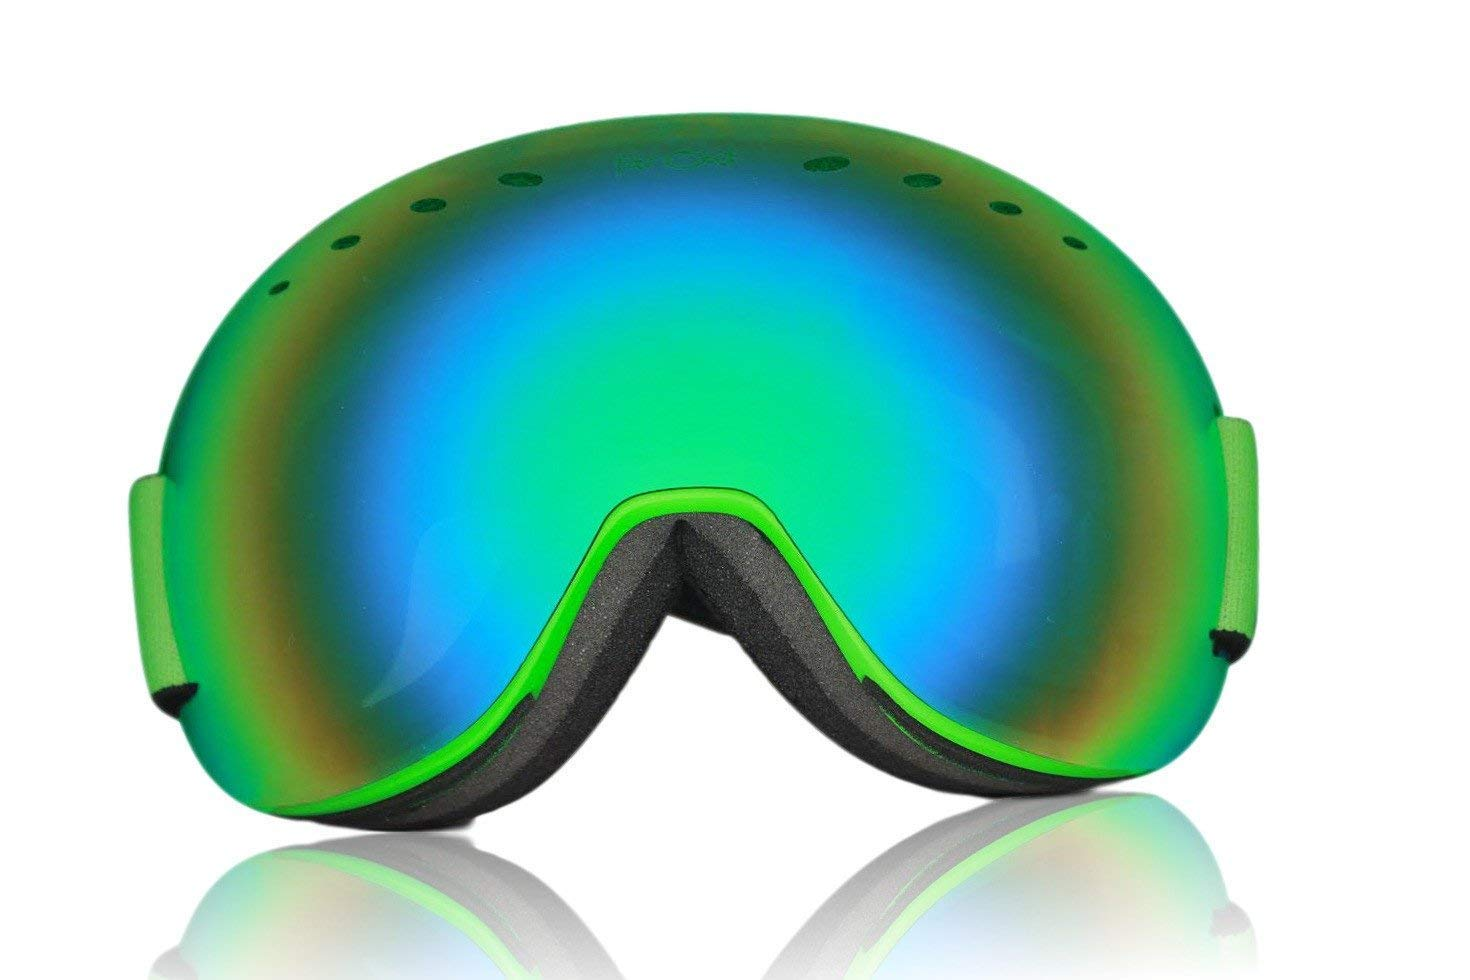 6b5629035f22 Get Quotations · Far Out Sunglasses Snowboard Ski Snow Googles Expose  Goggles Neon Green - Green Lens